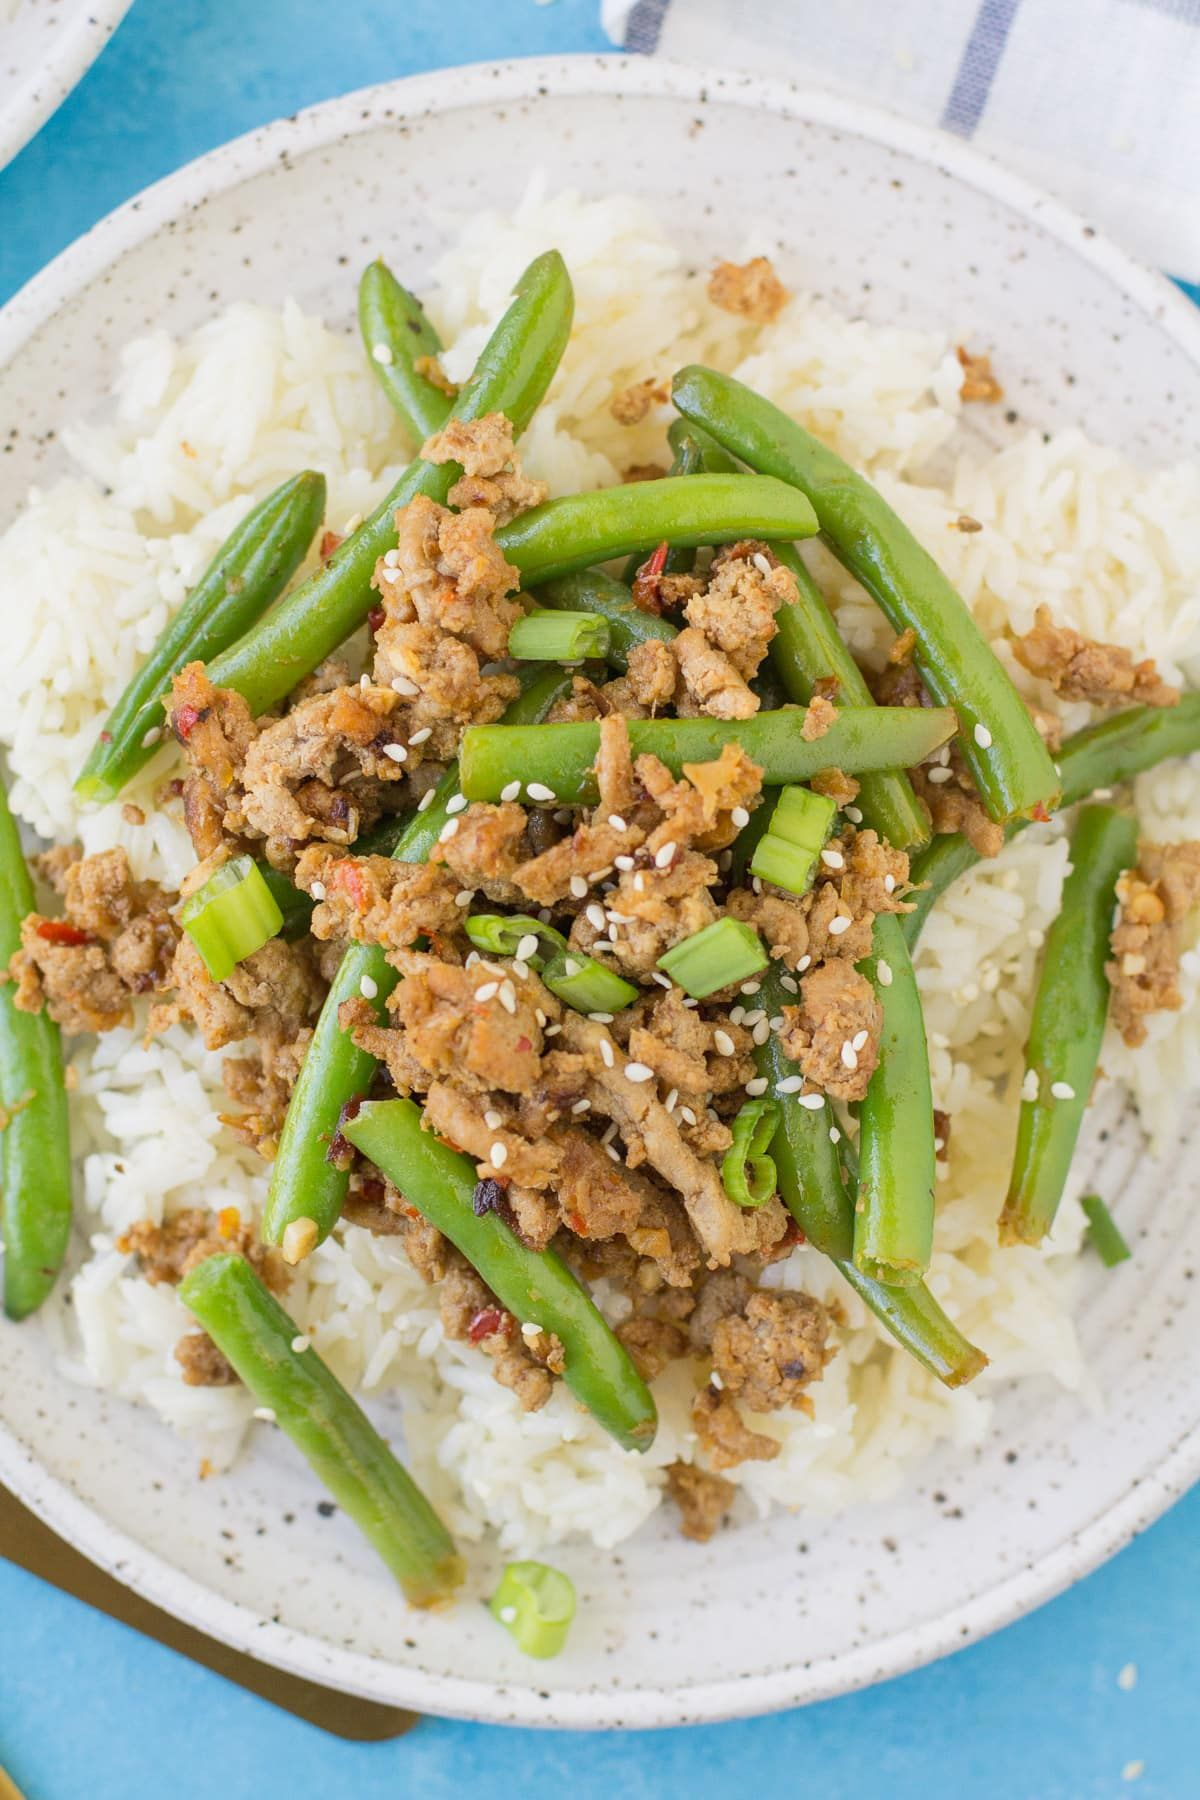 Spicy Ground Turkey Stir Fry - The Clean Eating Couple